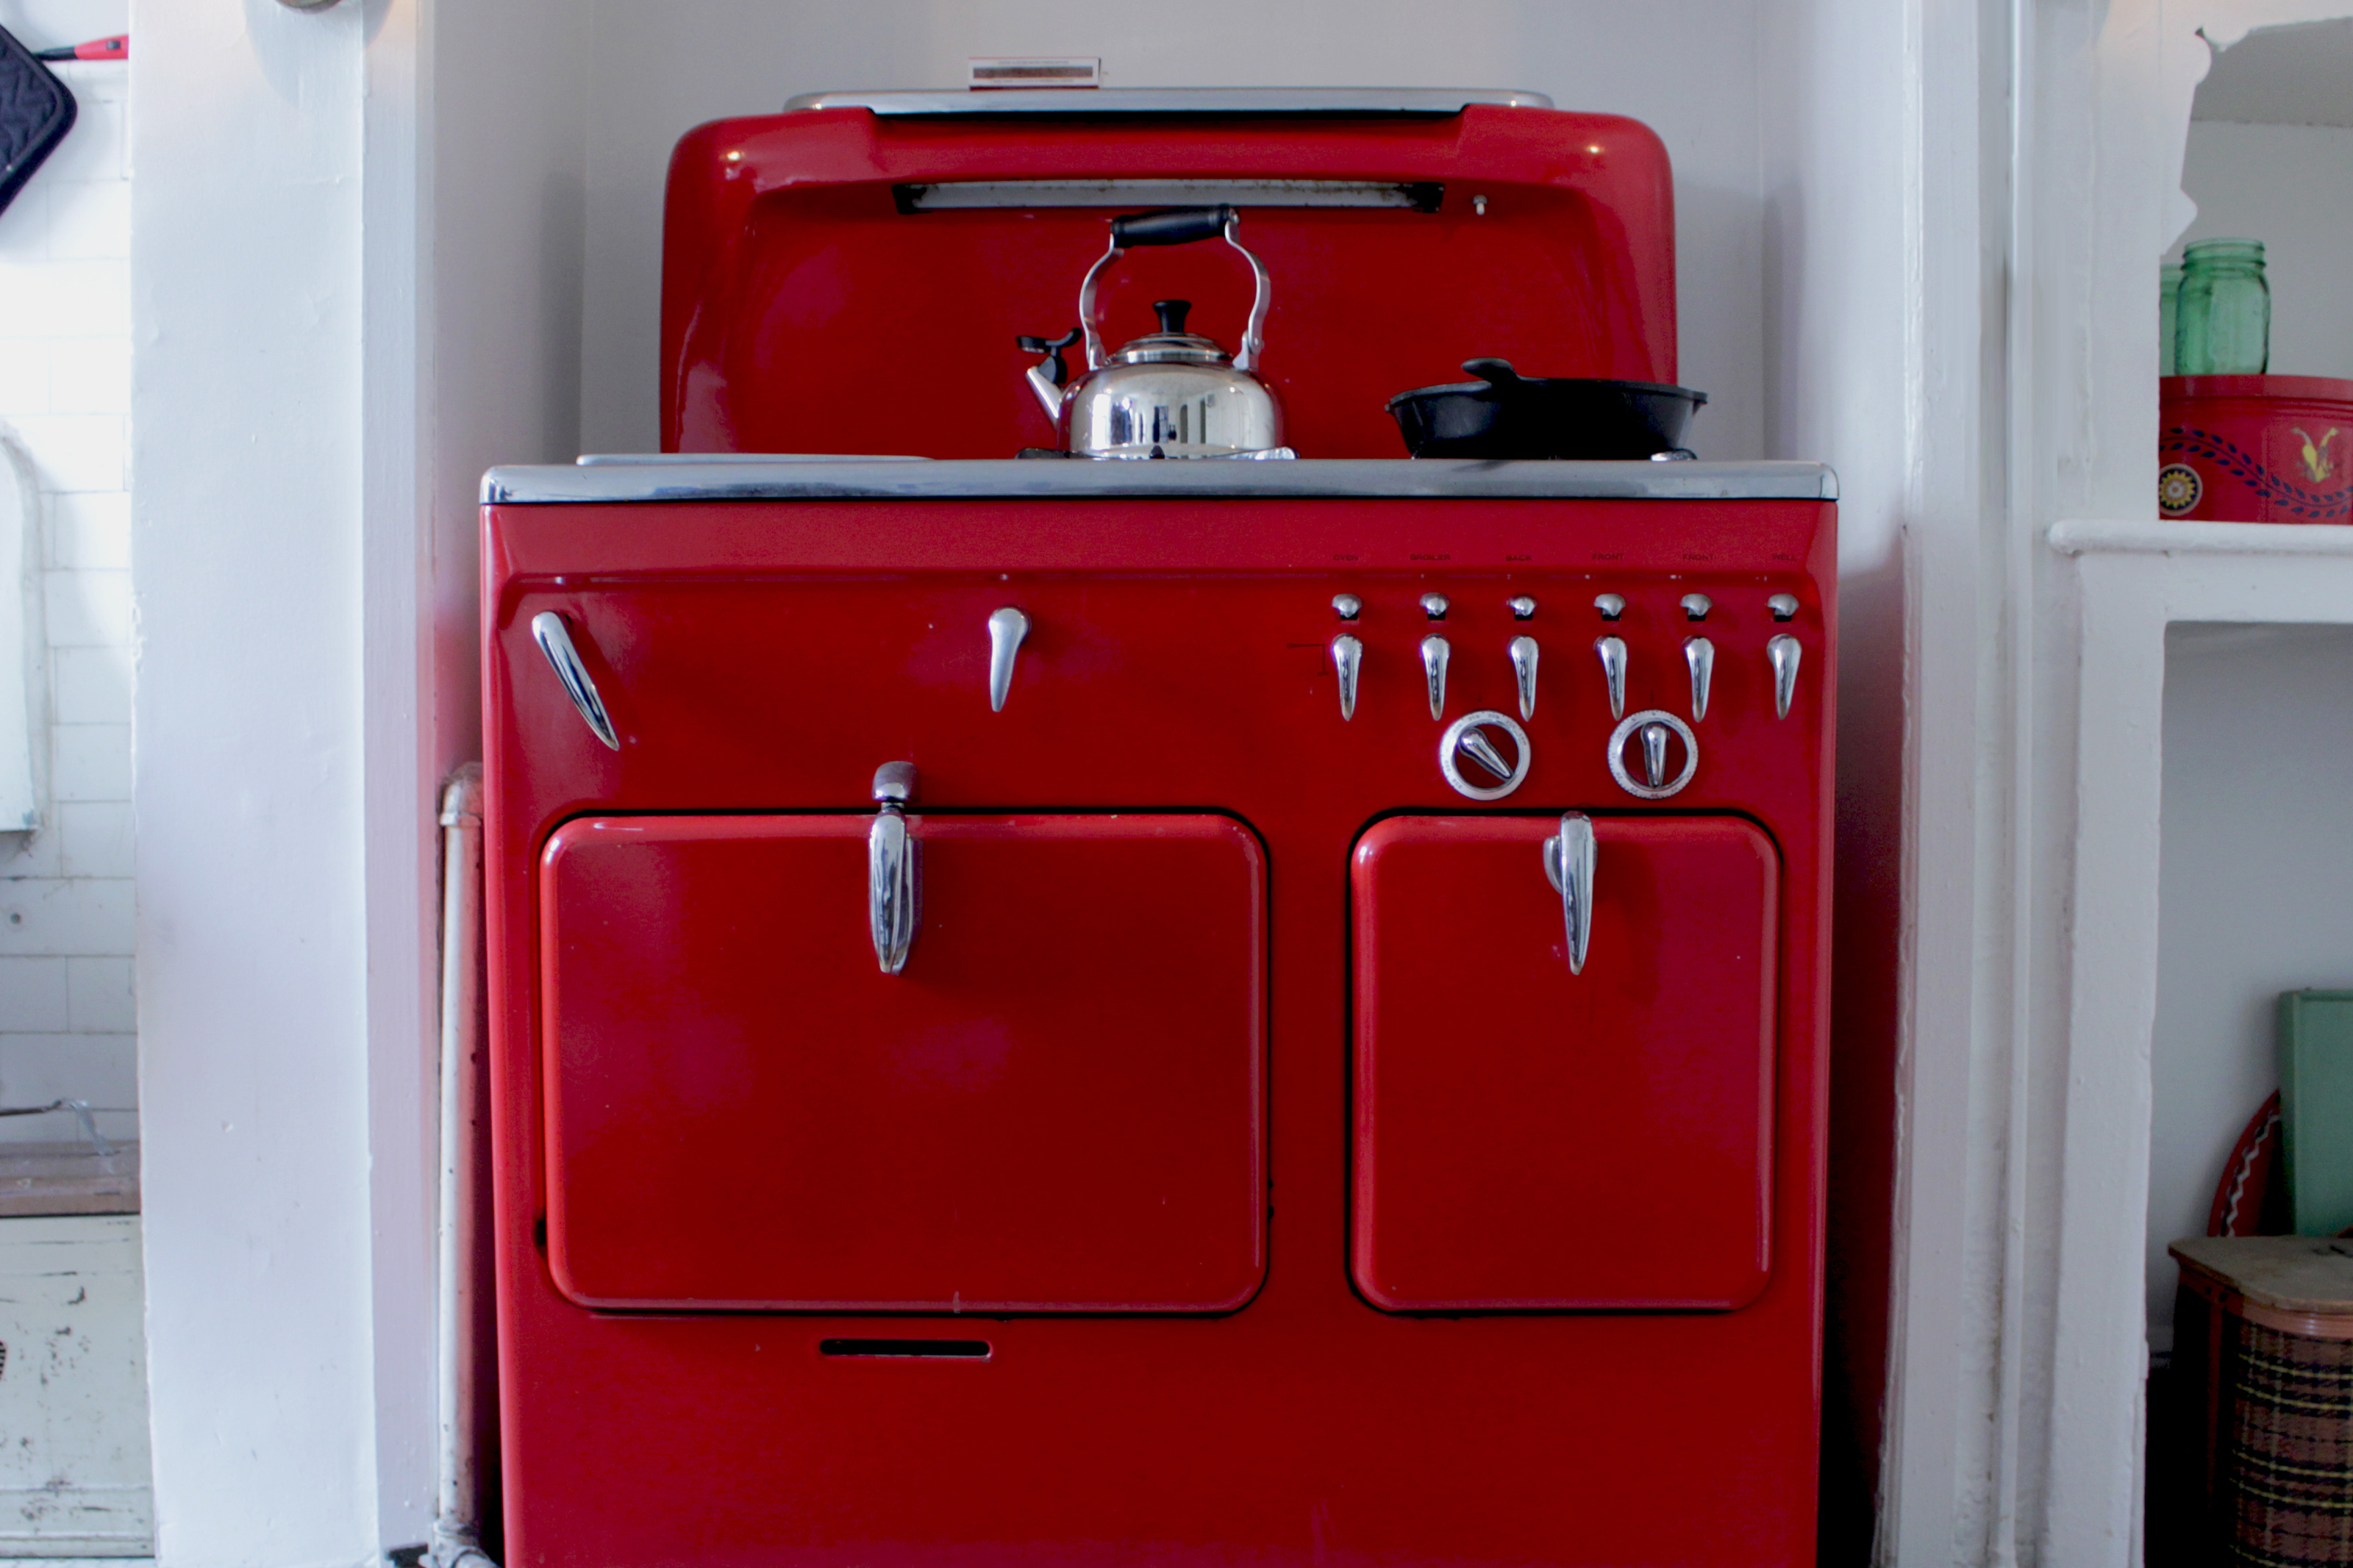 Red vintage stove in a home kitchen